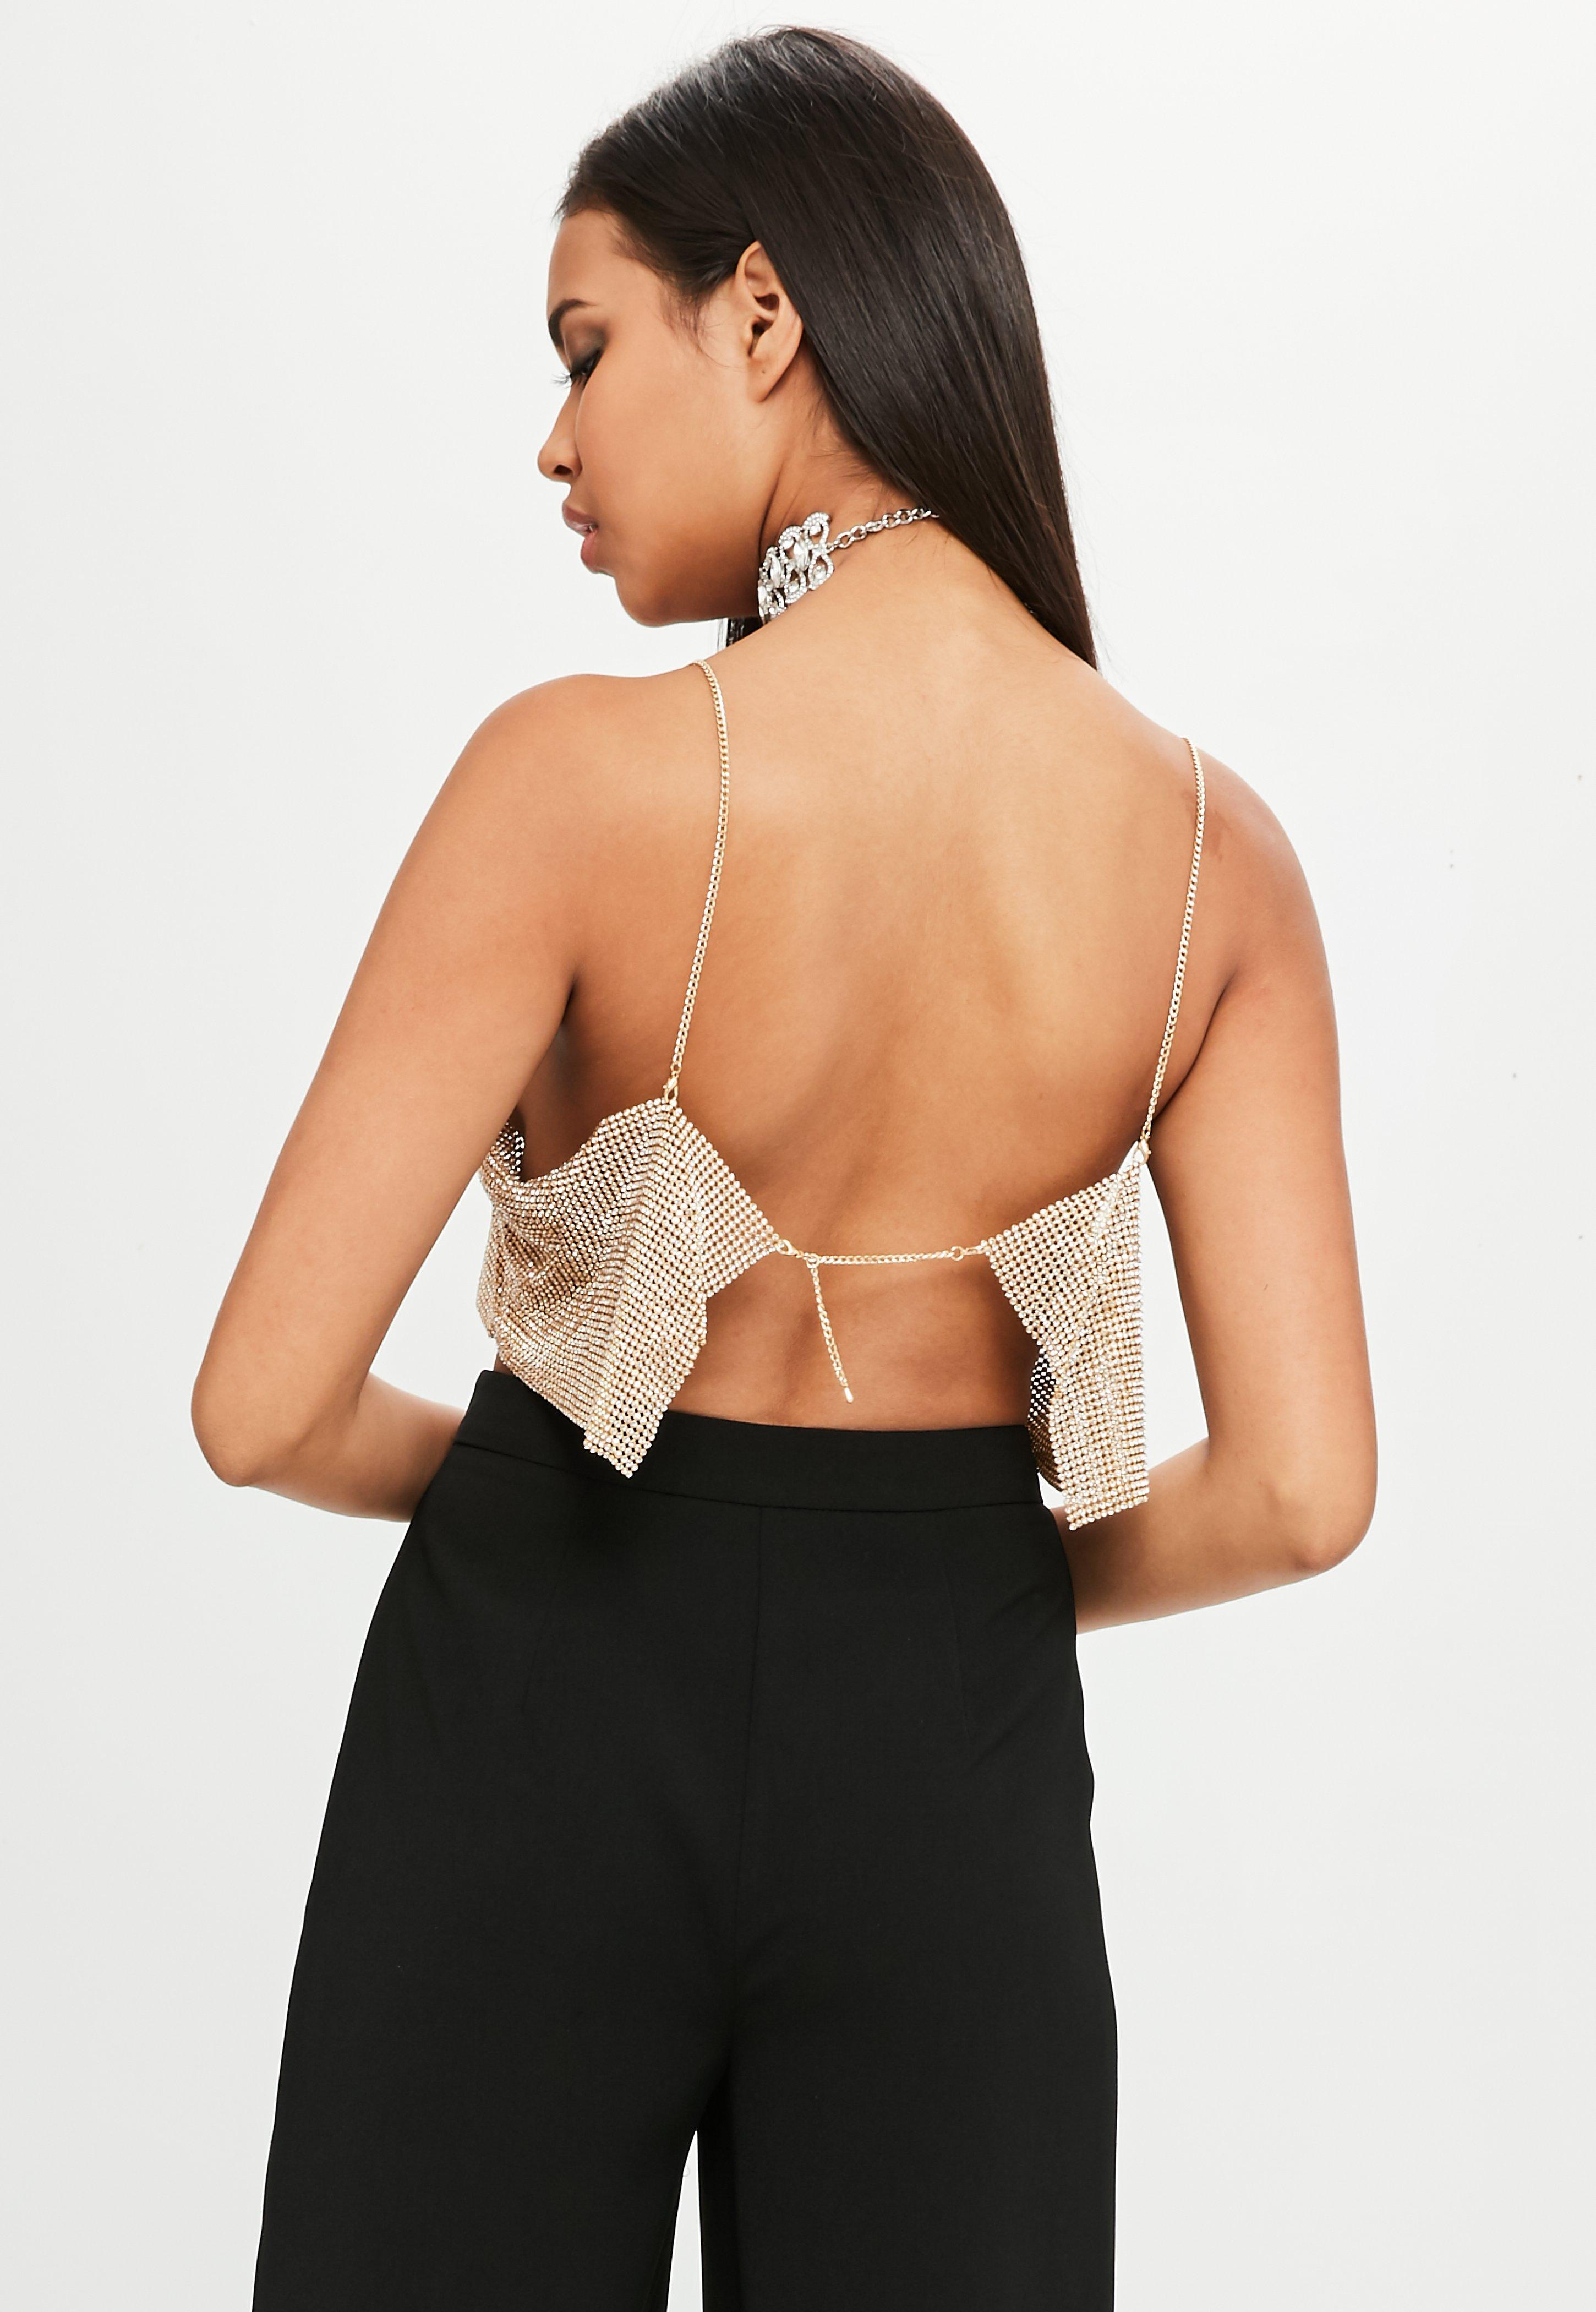 315f377d1cc149 Lyst - Missguided Carli Bybel X Gold Chain Mail Bandeau Bralet in ...